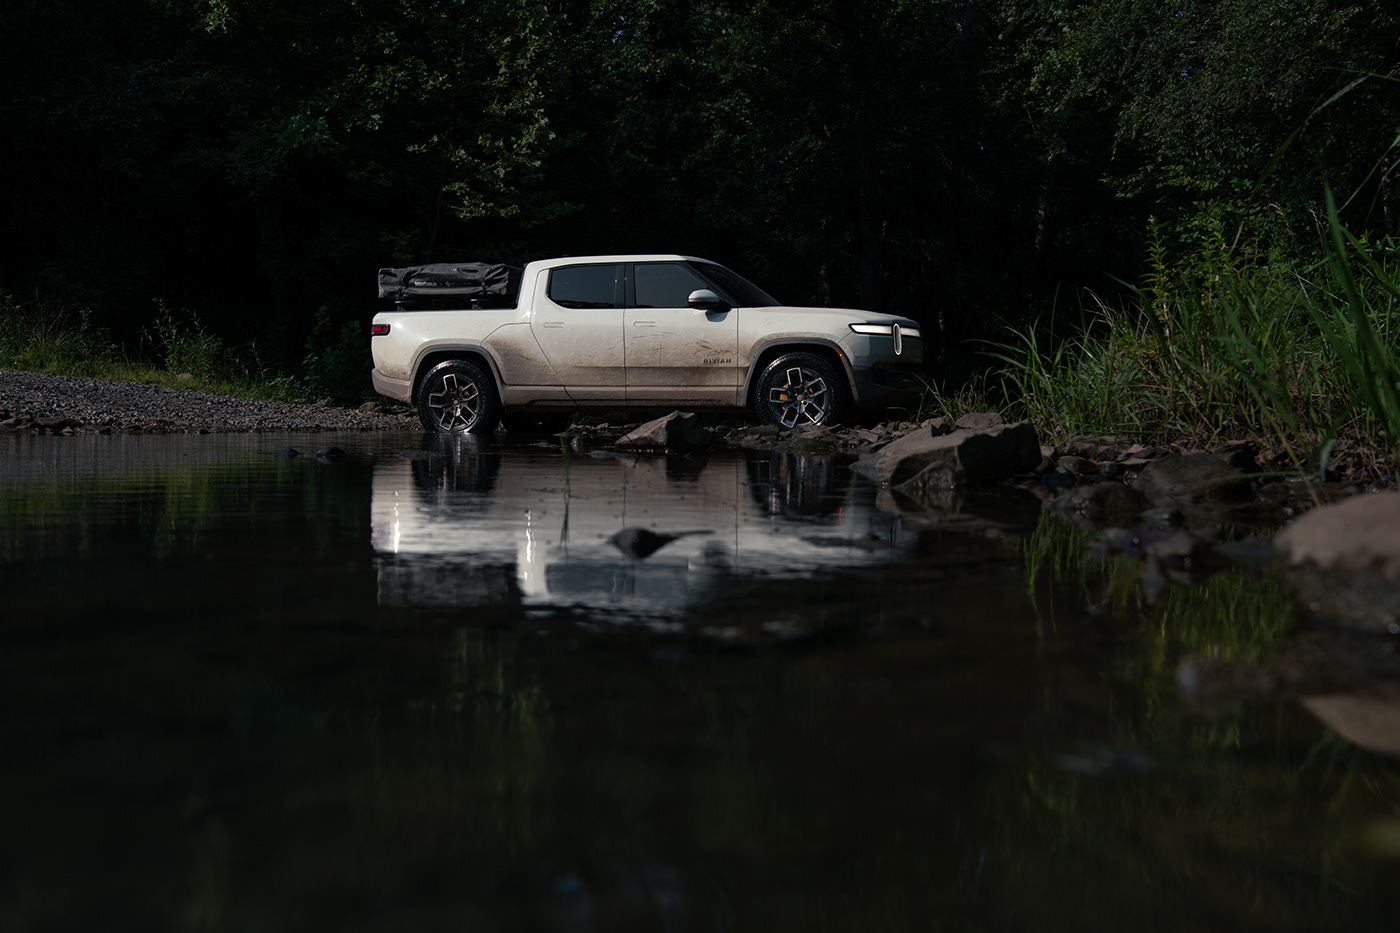 adventure automotive   colors electric forest Moody Outdoor Photography  Rivian Truck